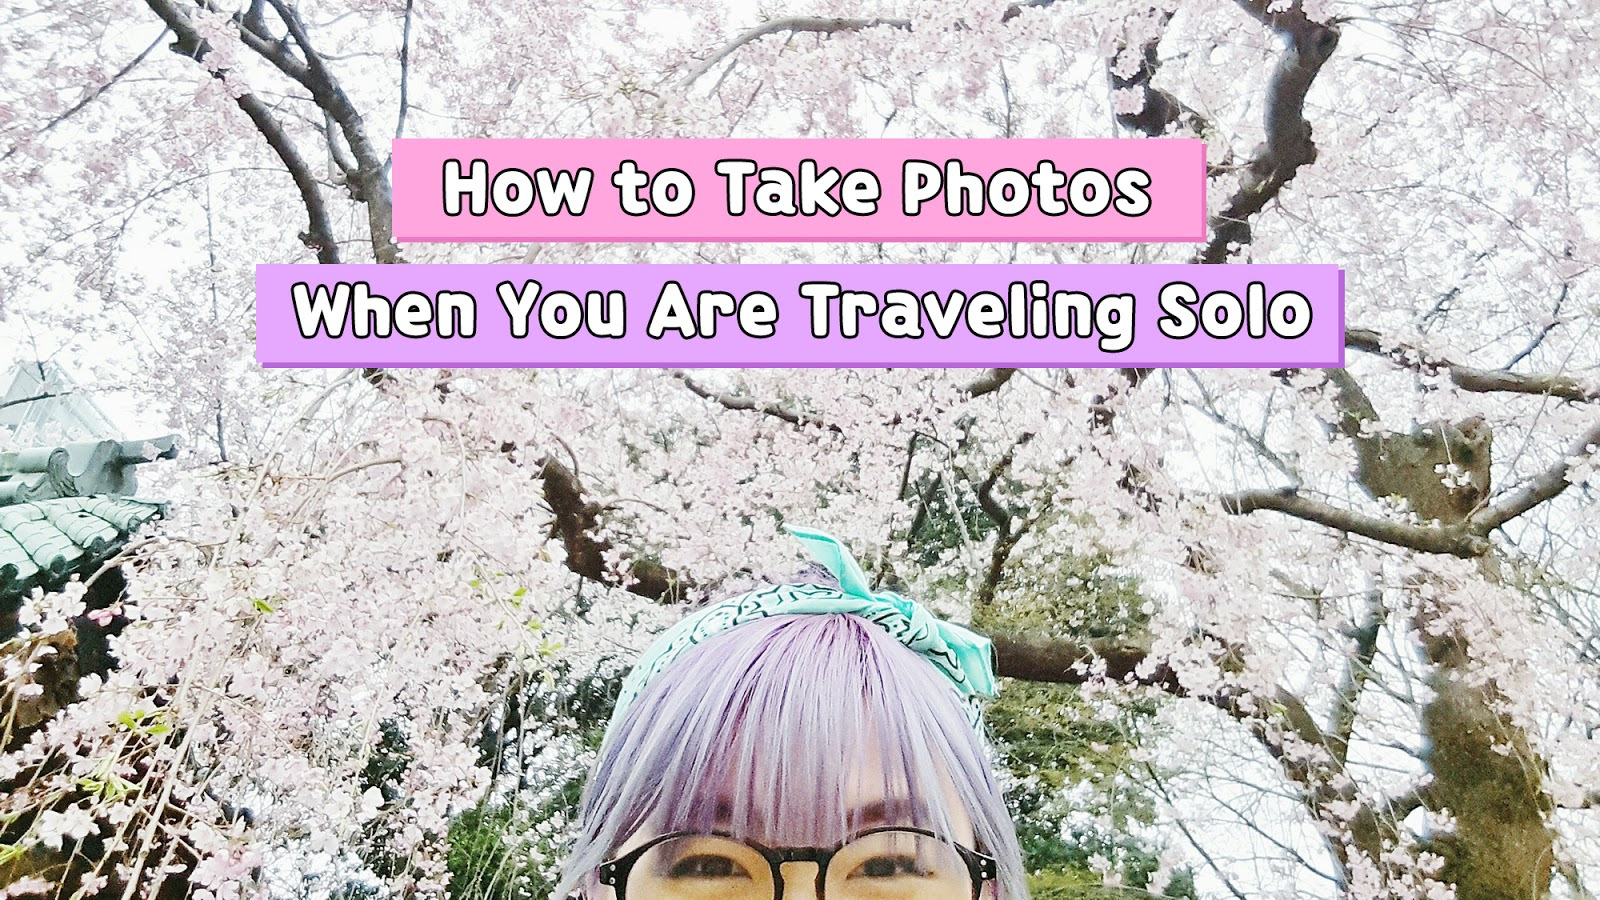 How to Take Photos When Traveling Solo - Pin 1 | www.bigdreamerblog.com